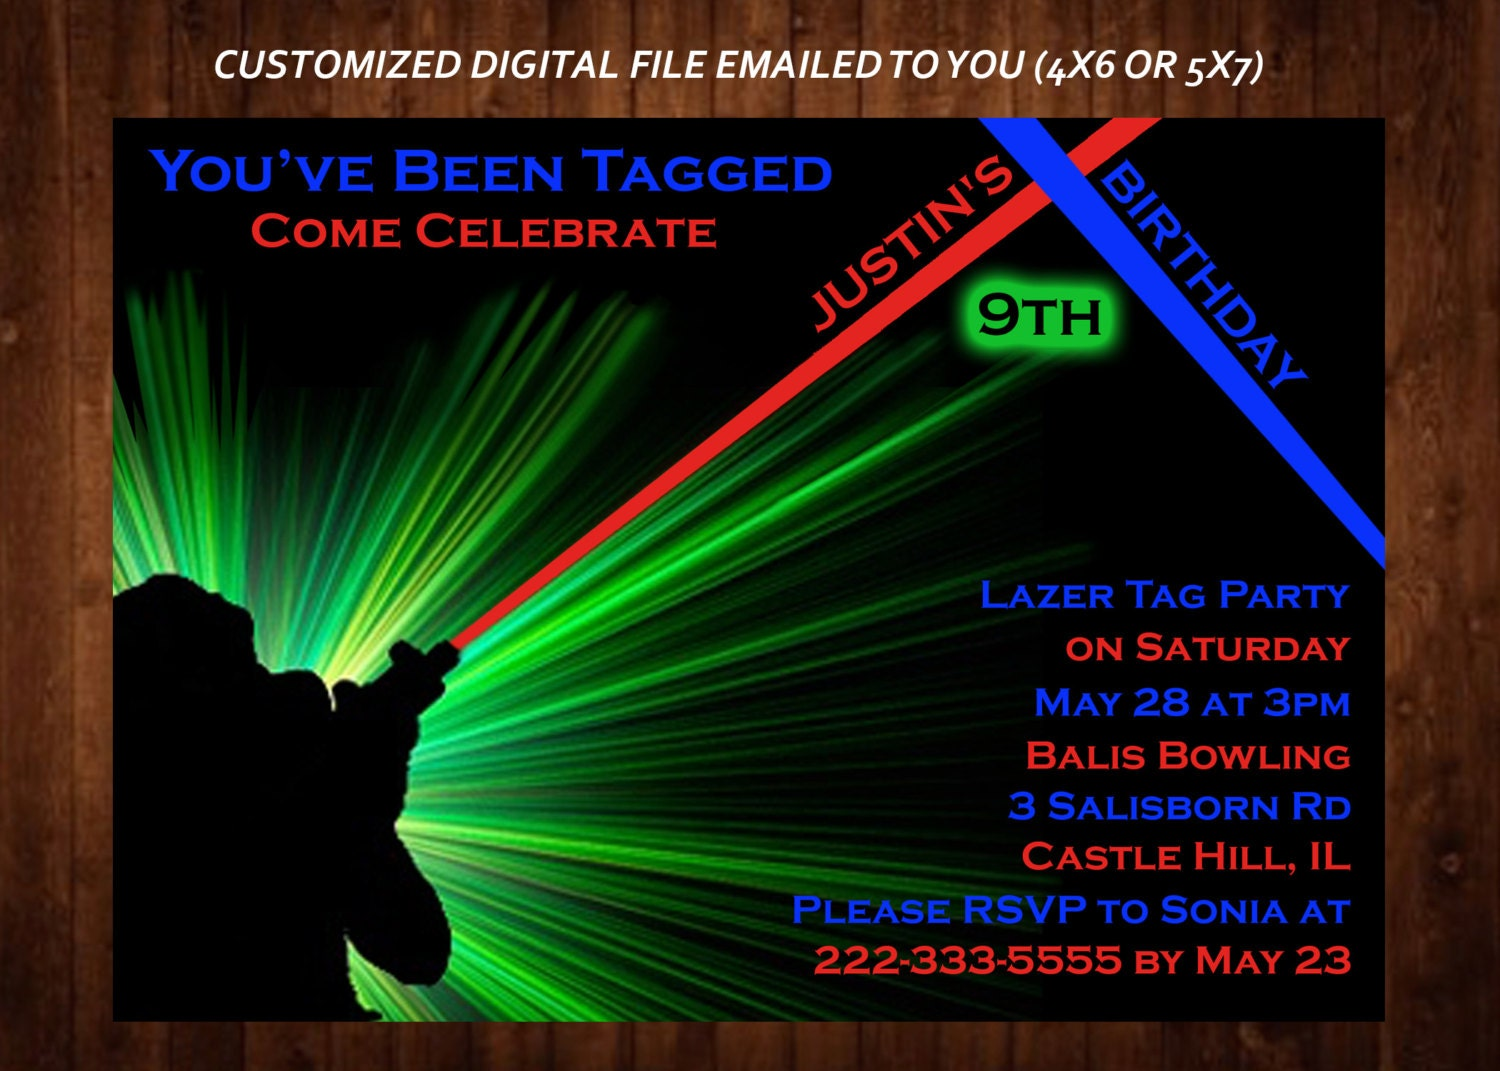 laser tag themed birthday party invitation laser tag custom, Party invitations